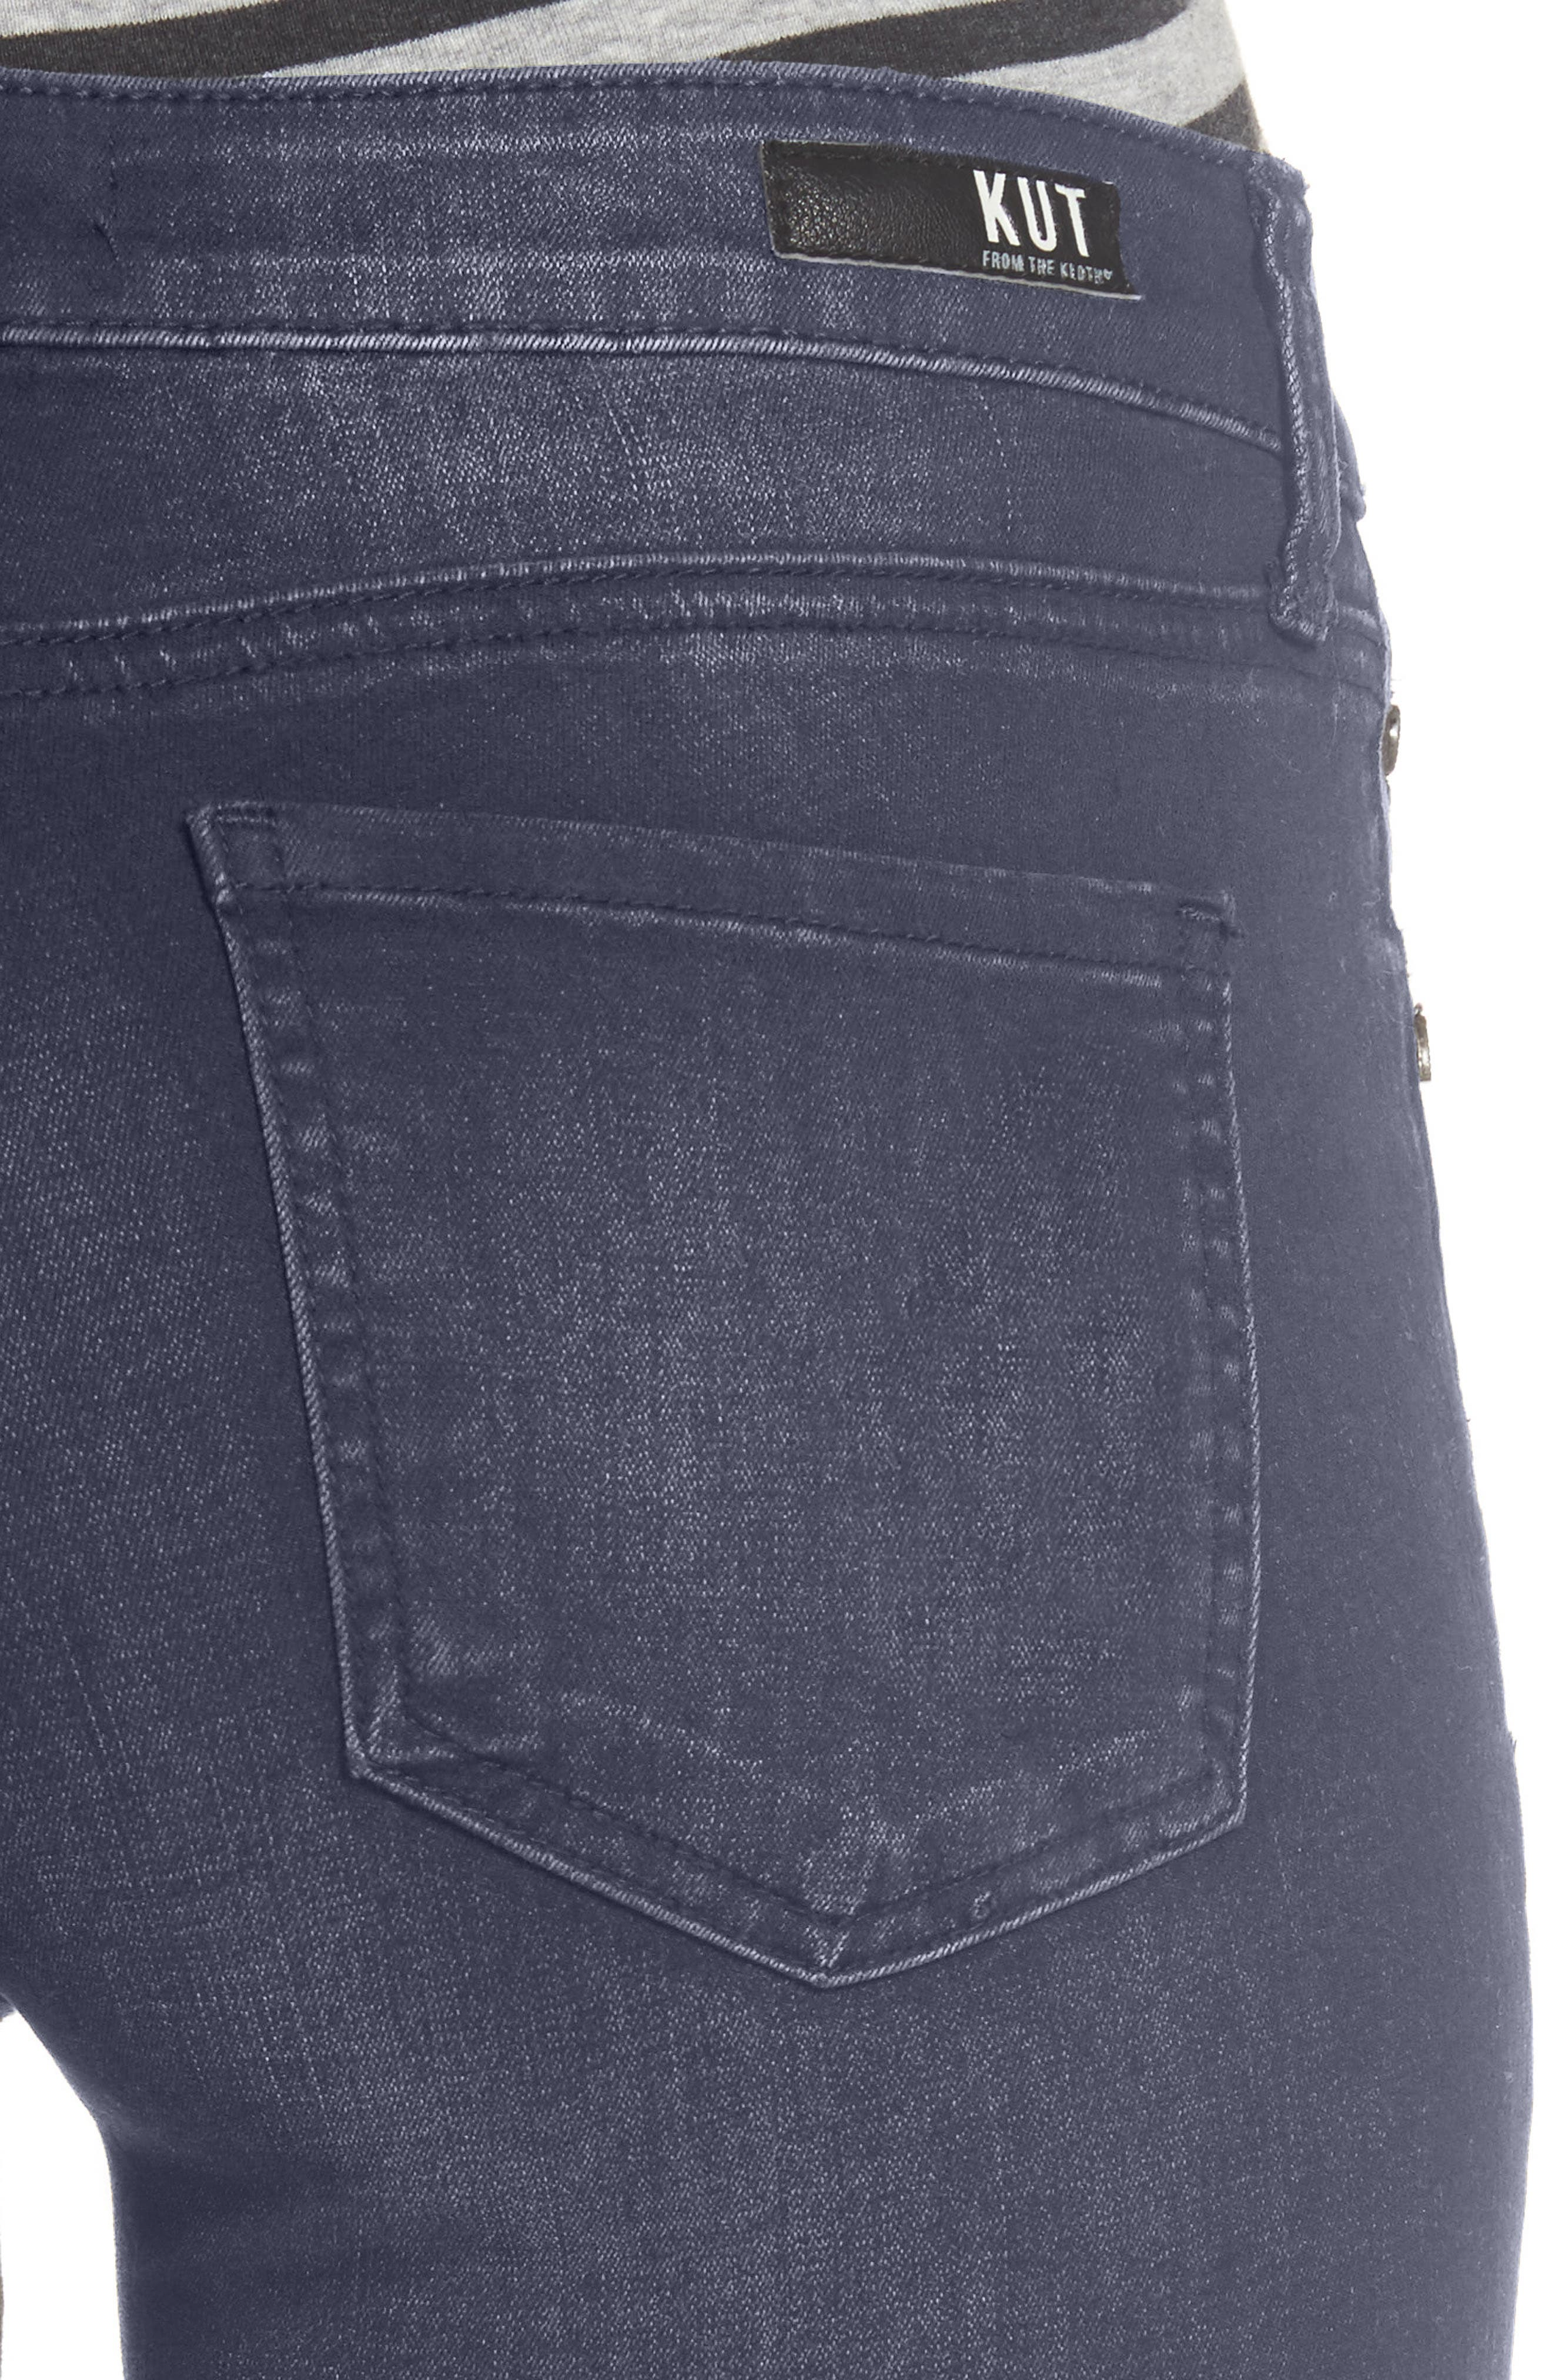 Mia Embroidered Skinny Jeans,                             Alternate thumbnail 4, color,                             Quintessential